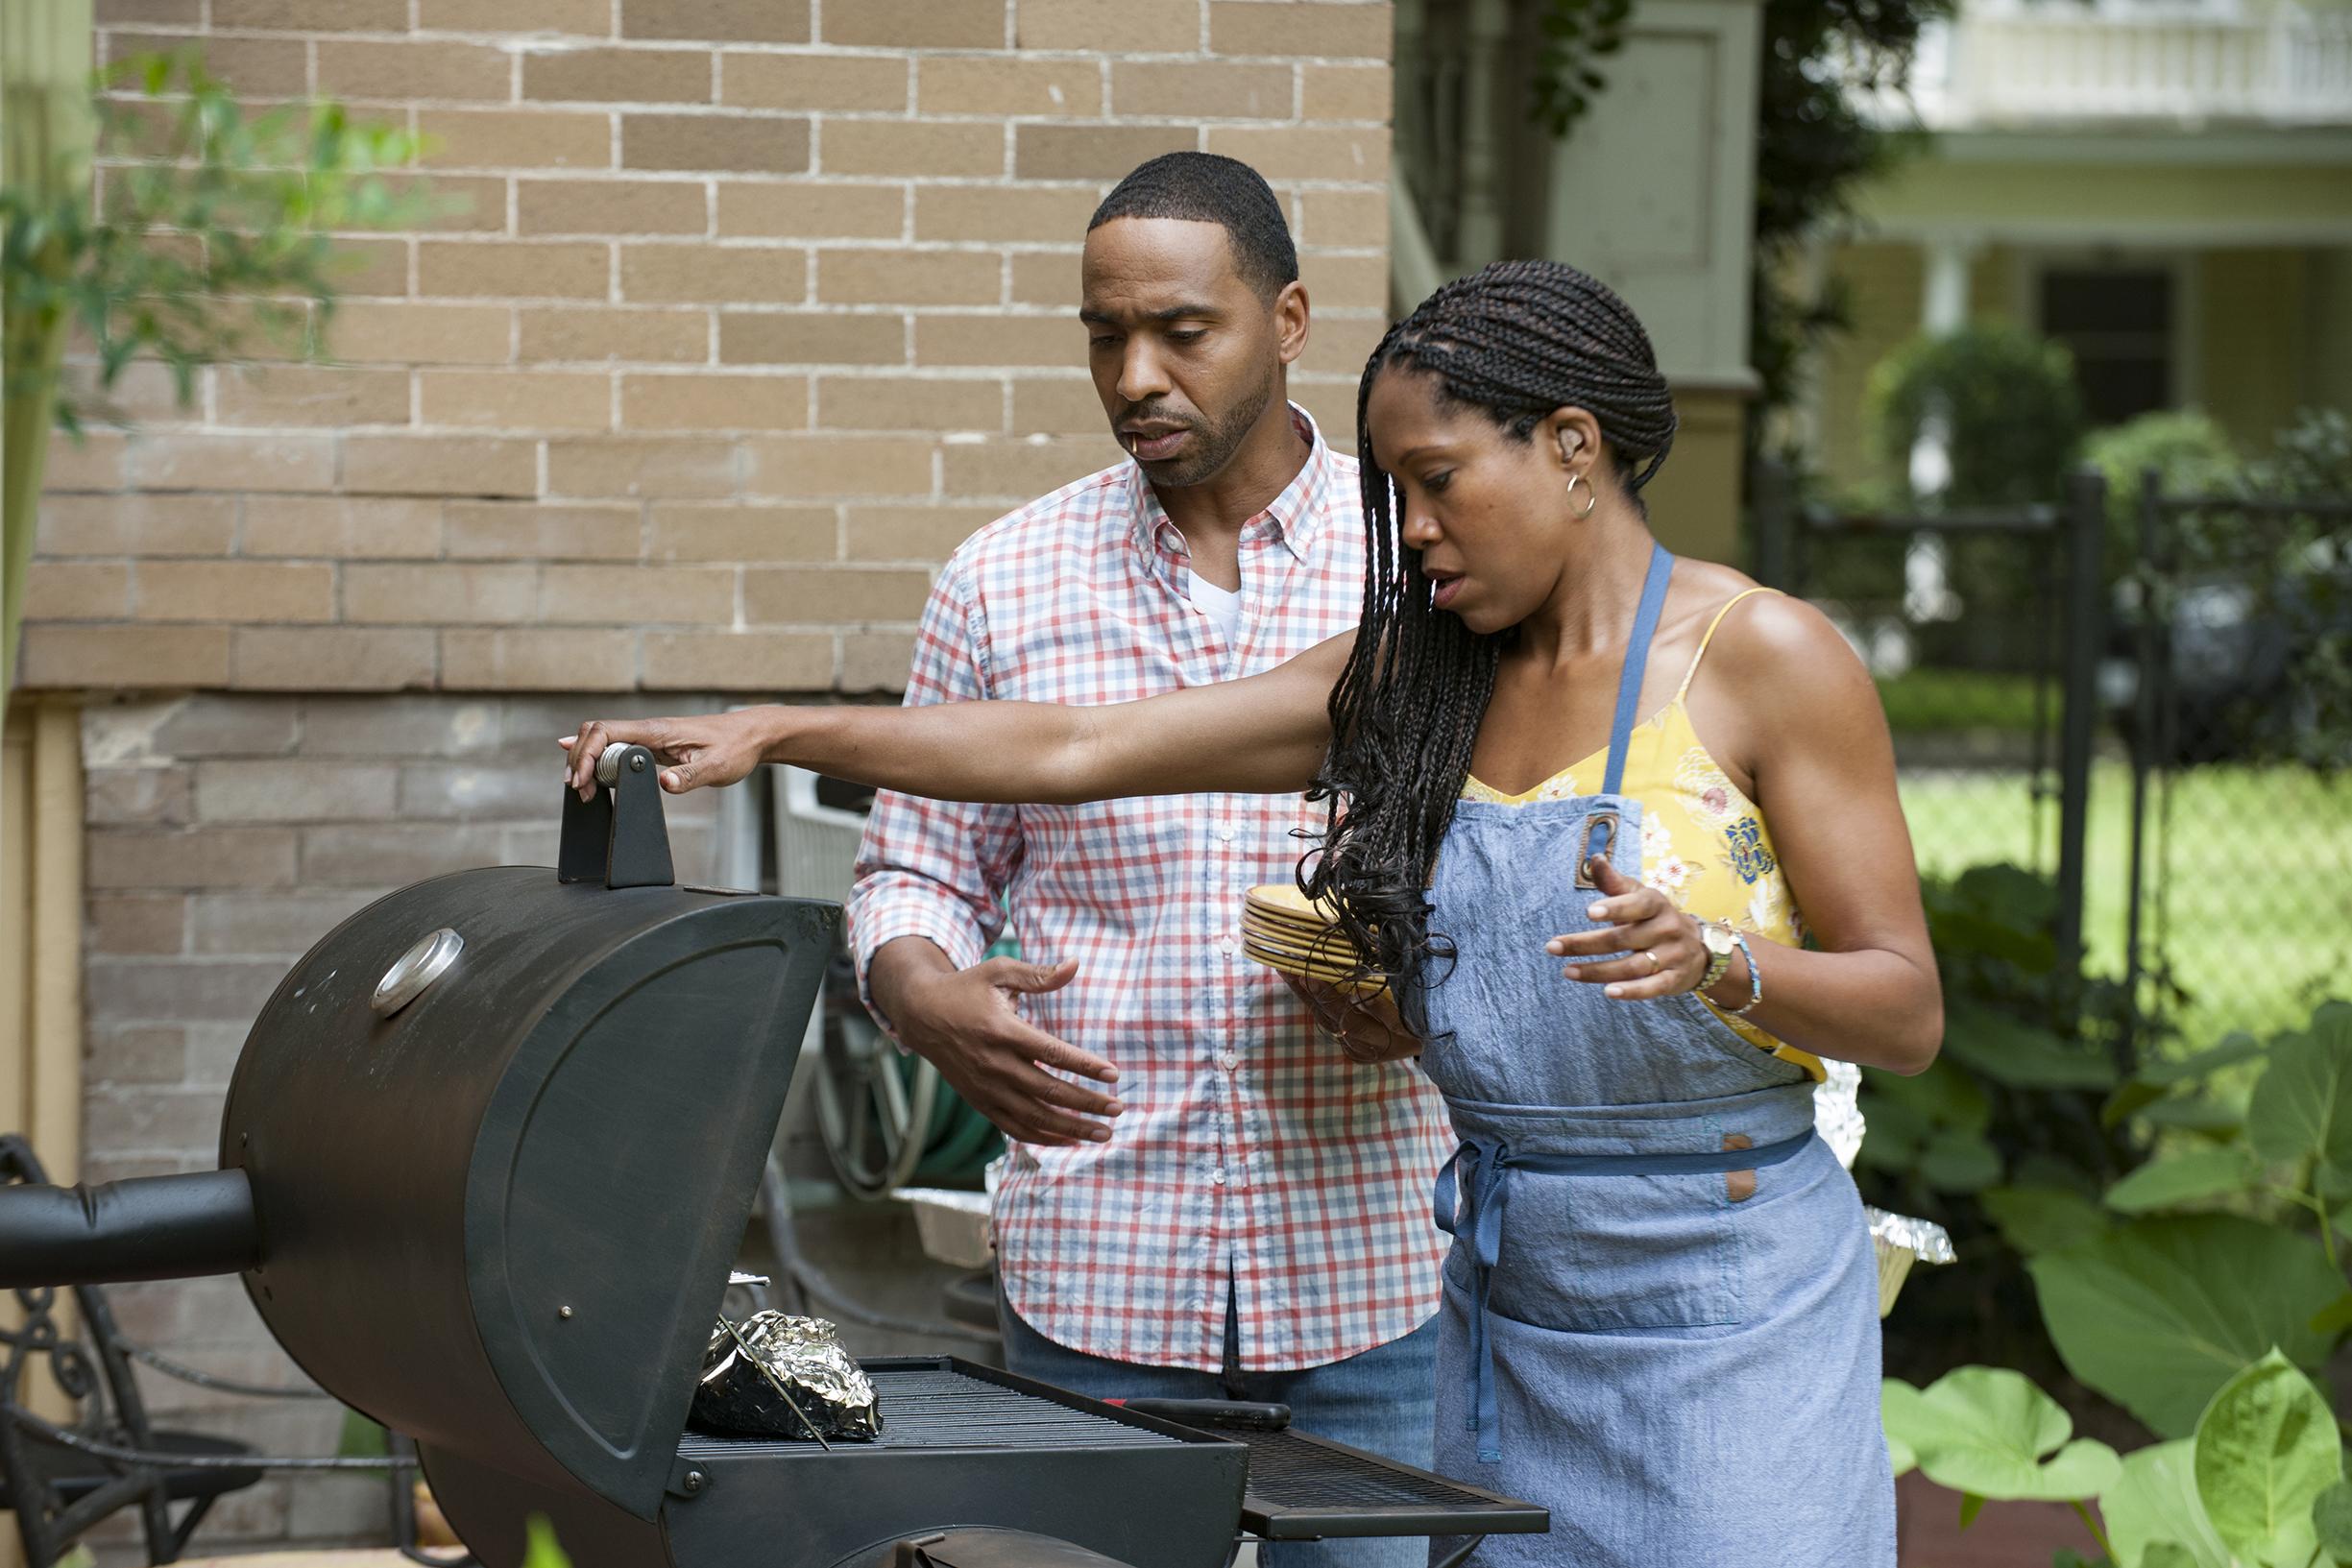 The Leftovers: Kevin Carroll and-Regina King as John and Erika Murphy